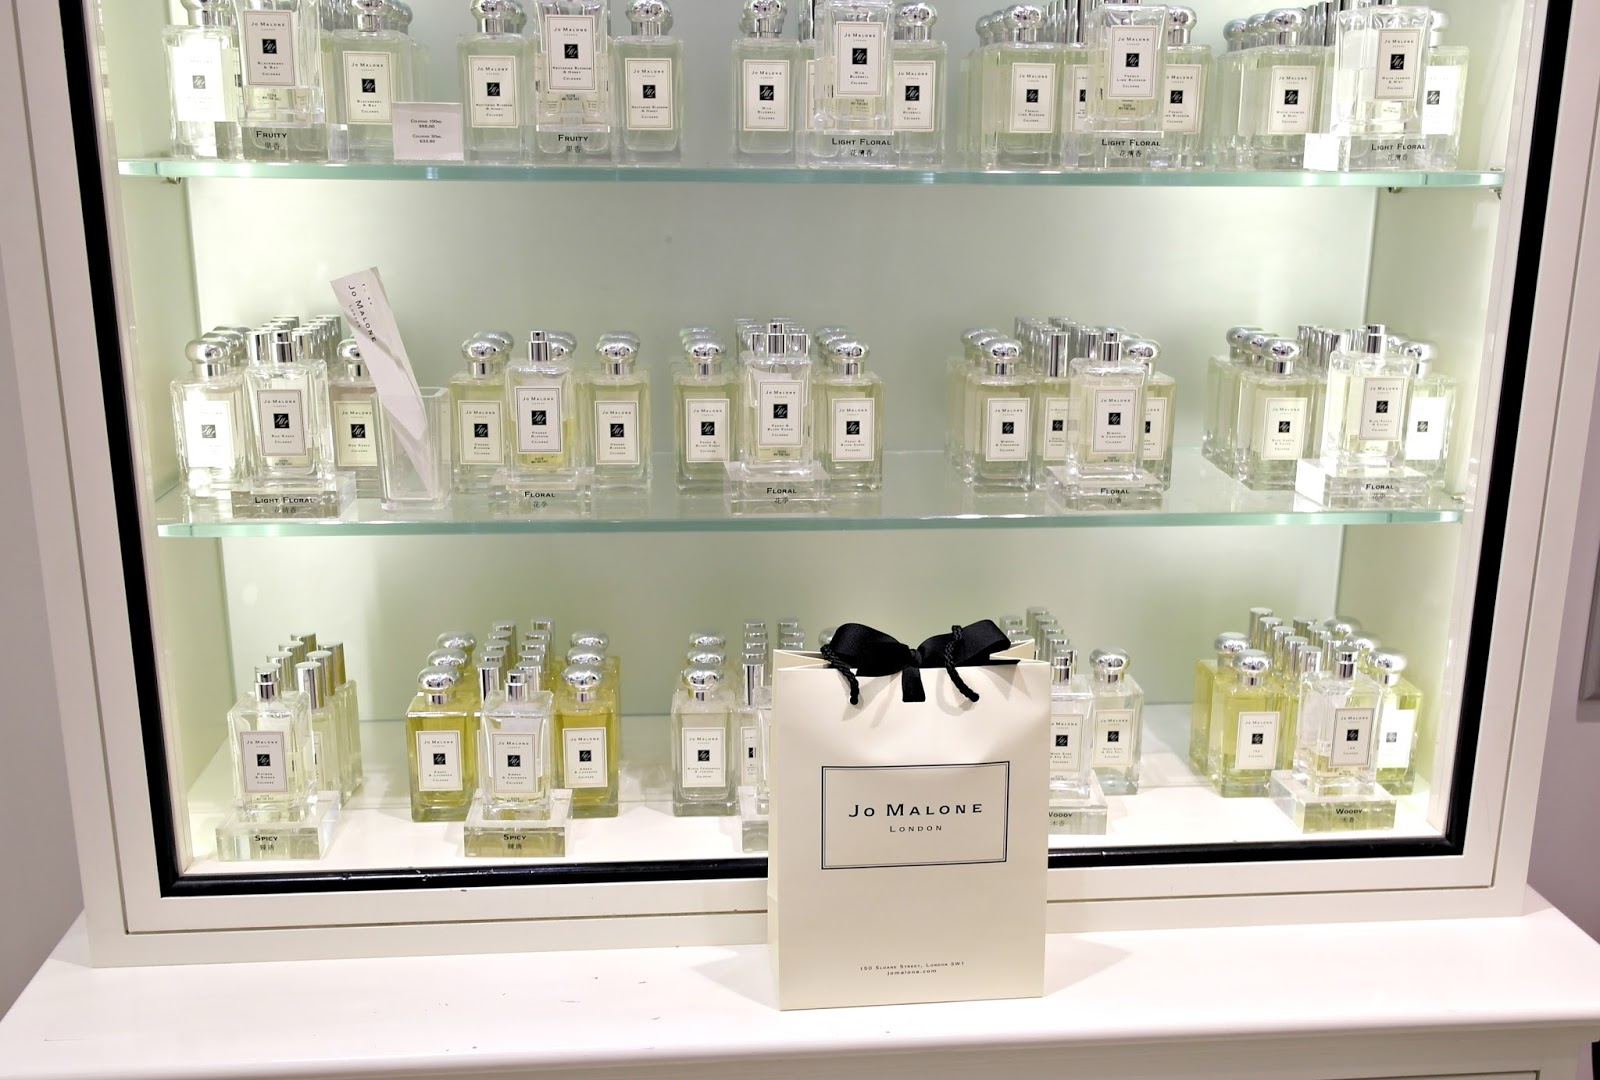 what happened in New York, jo malone, heathroe, duty free